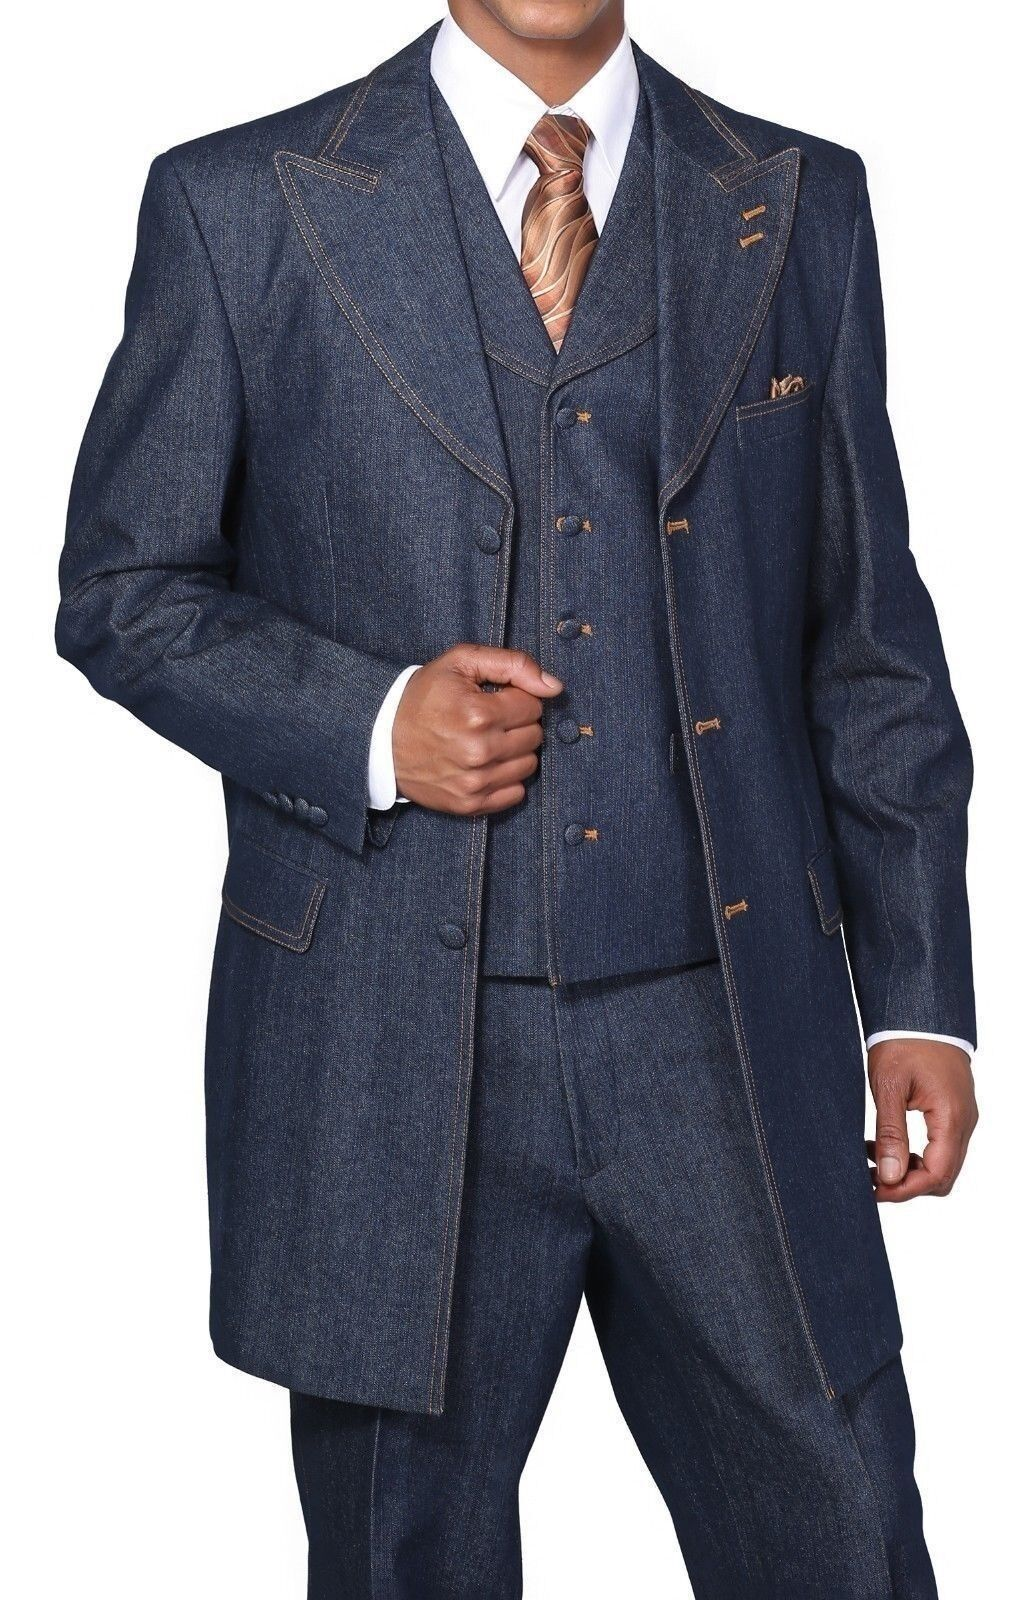 The denim suit with wide leg pants will take you there. You can guarantee your club success with the ladies in one of these Fashionable Mens Denim Suits with the wide leg pants. Mens Fashion suits like these made of full Denim fabric and are strictly for the fashion minded man who knows what he likes and knows how to get it.